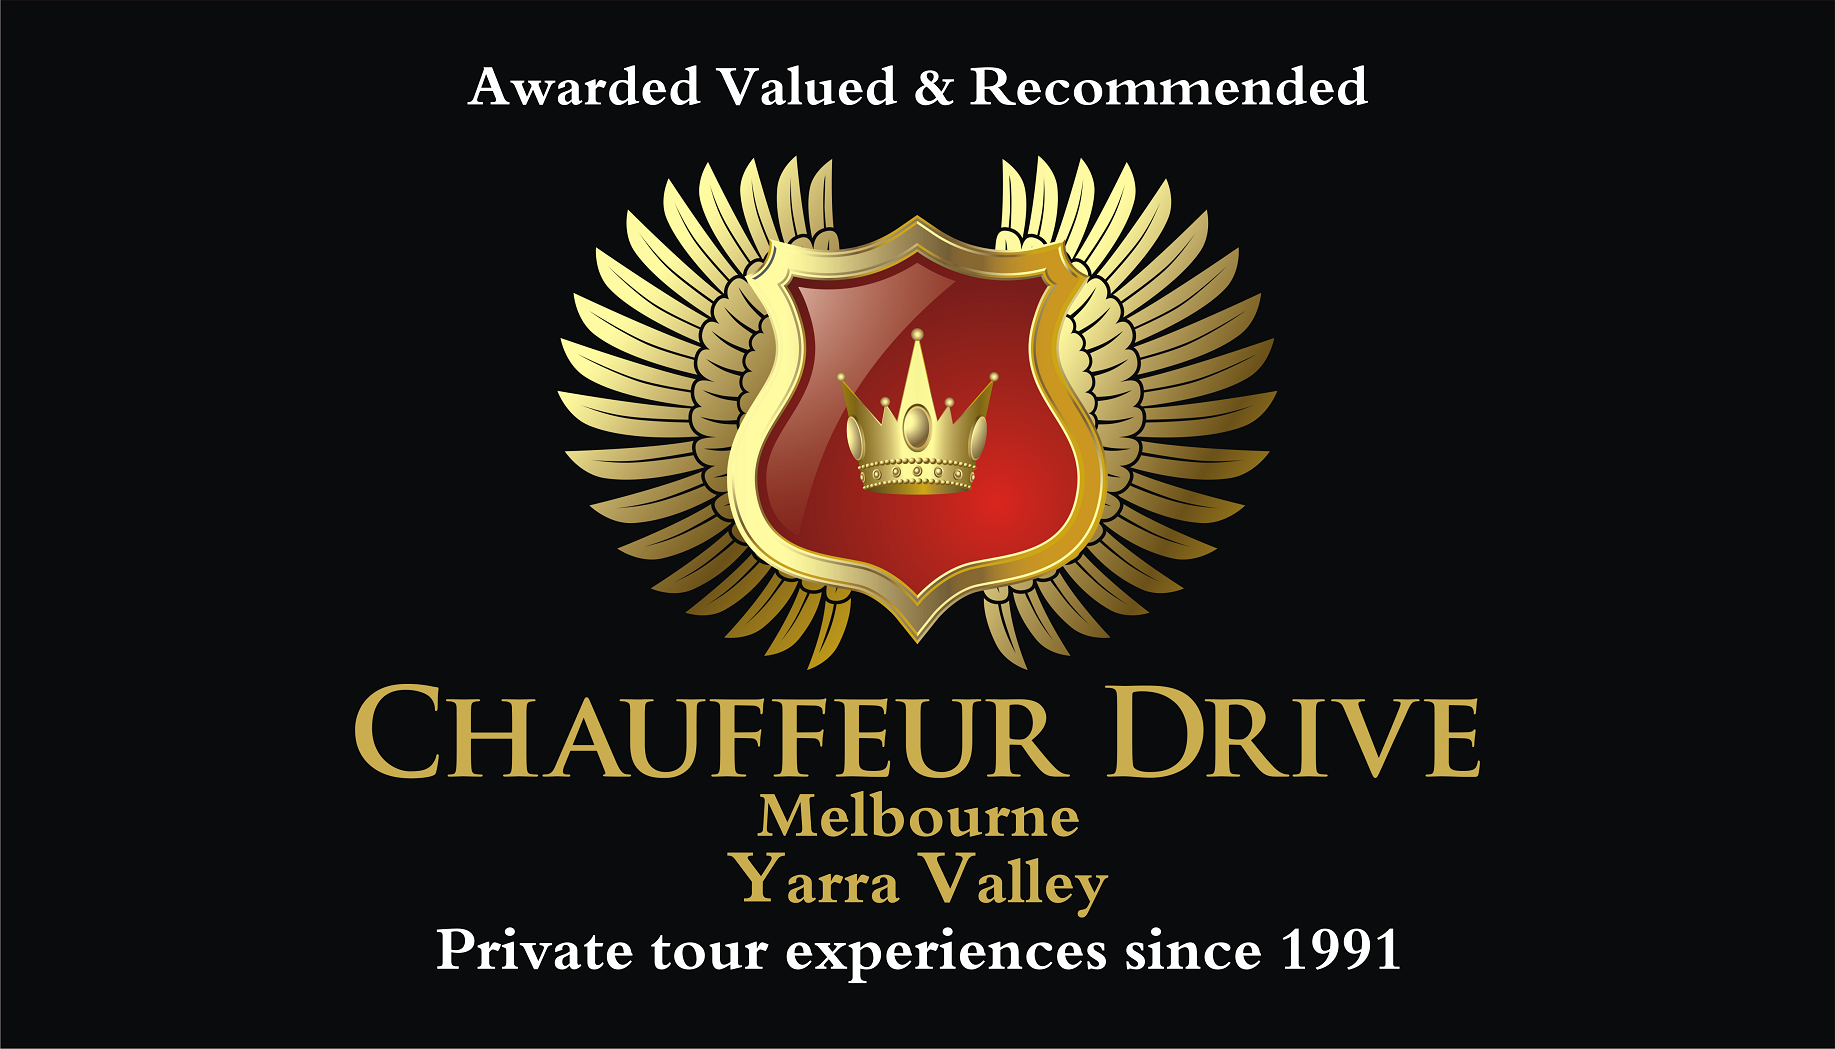 Chauffeur Drive Yarra Valley, Melbourne